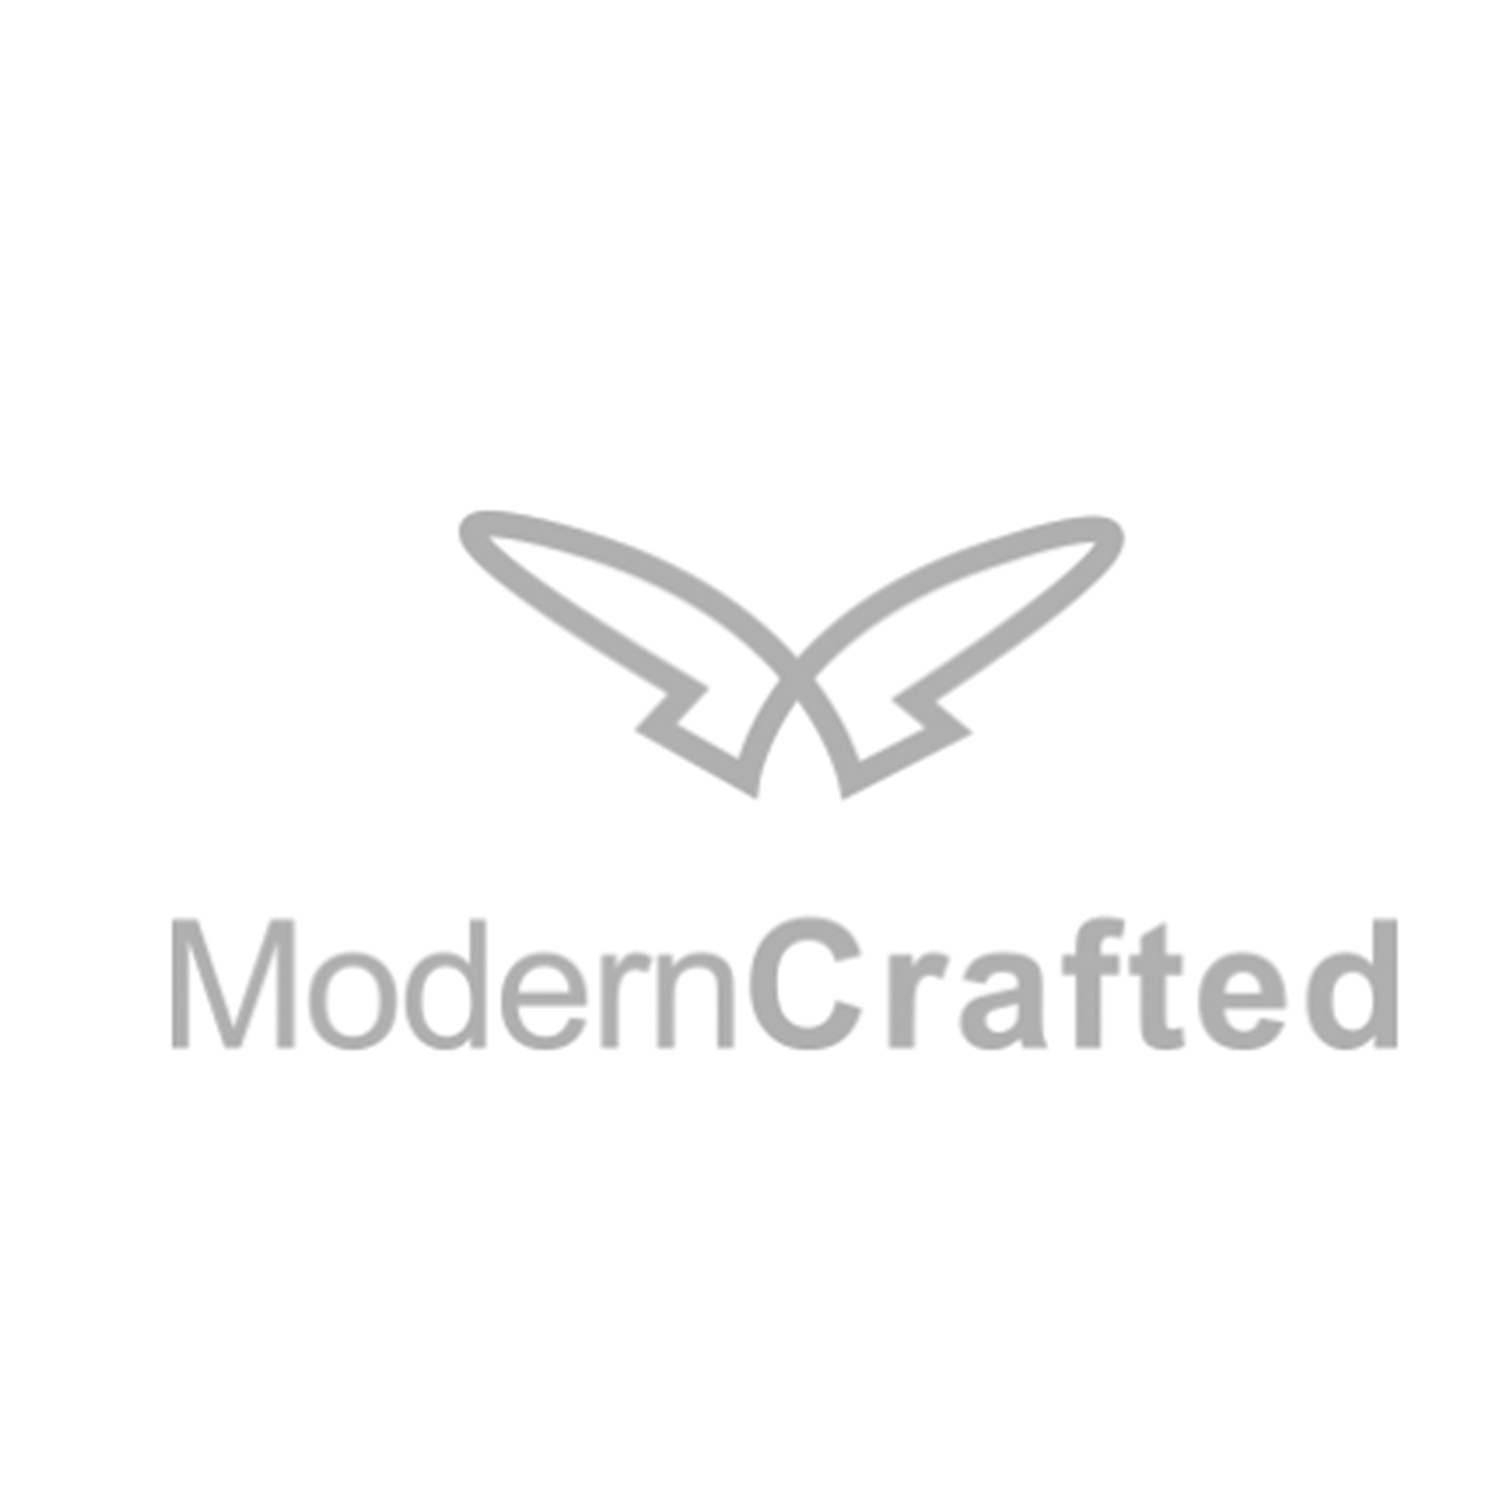 ModernCrafted_logo.png